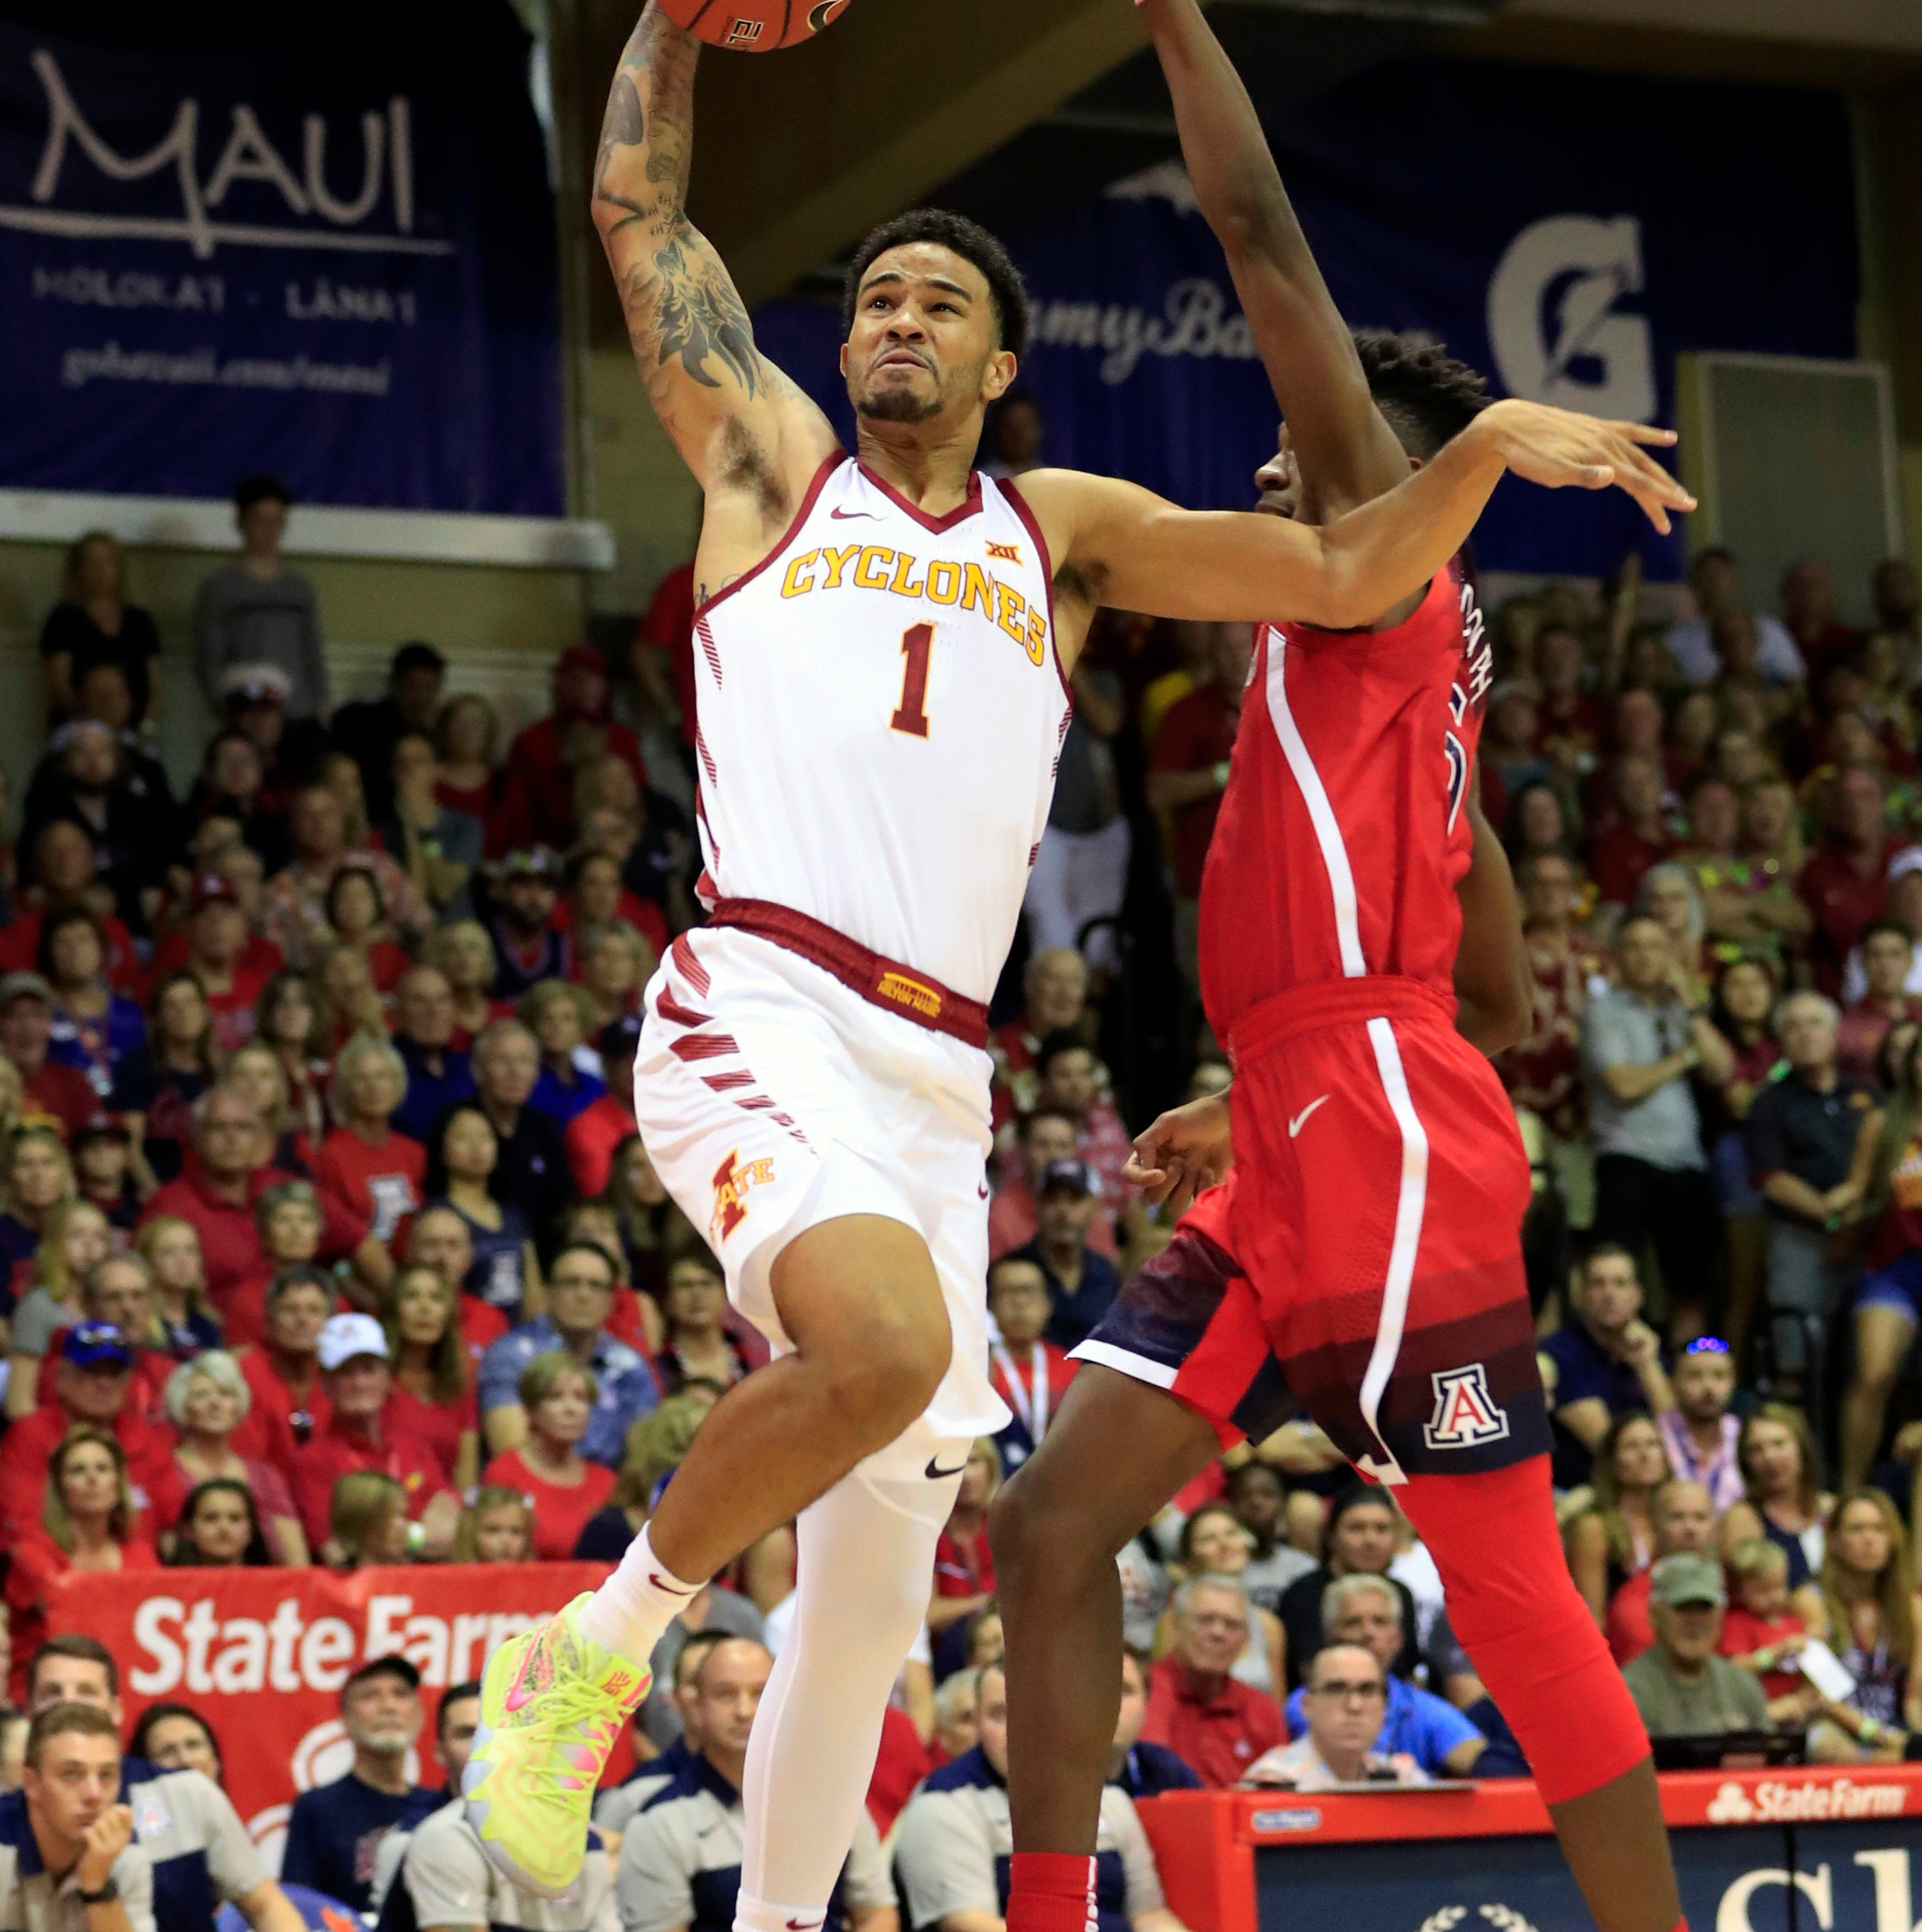 Peterson: Iowa State loses 10-point lead and first-round game in Maui tourney